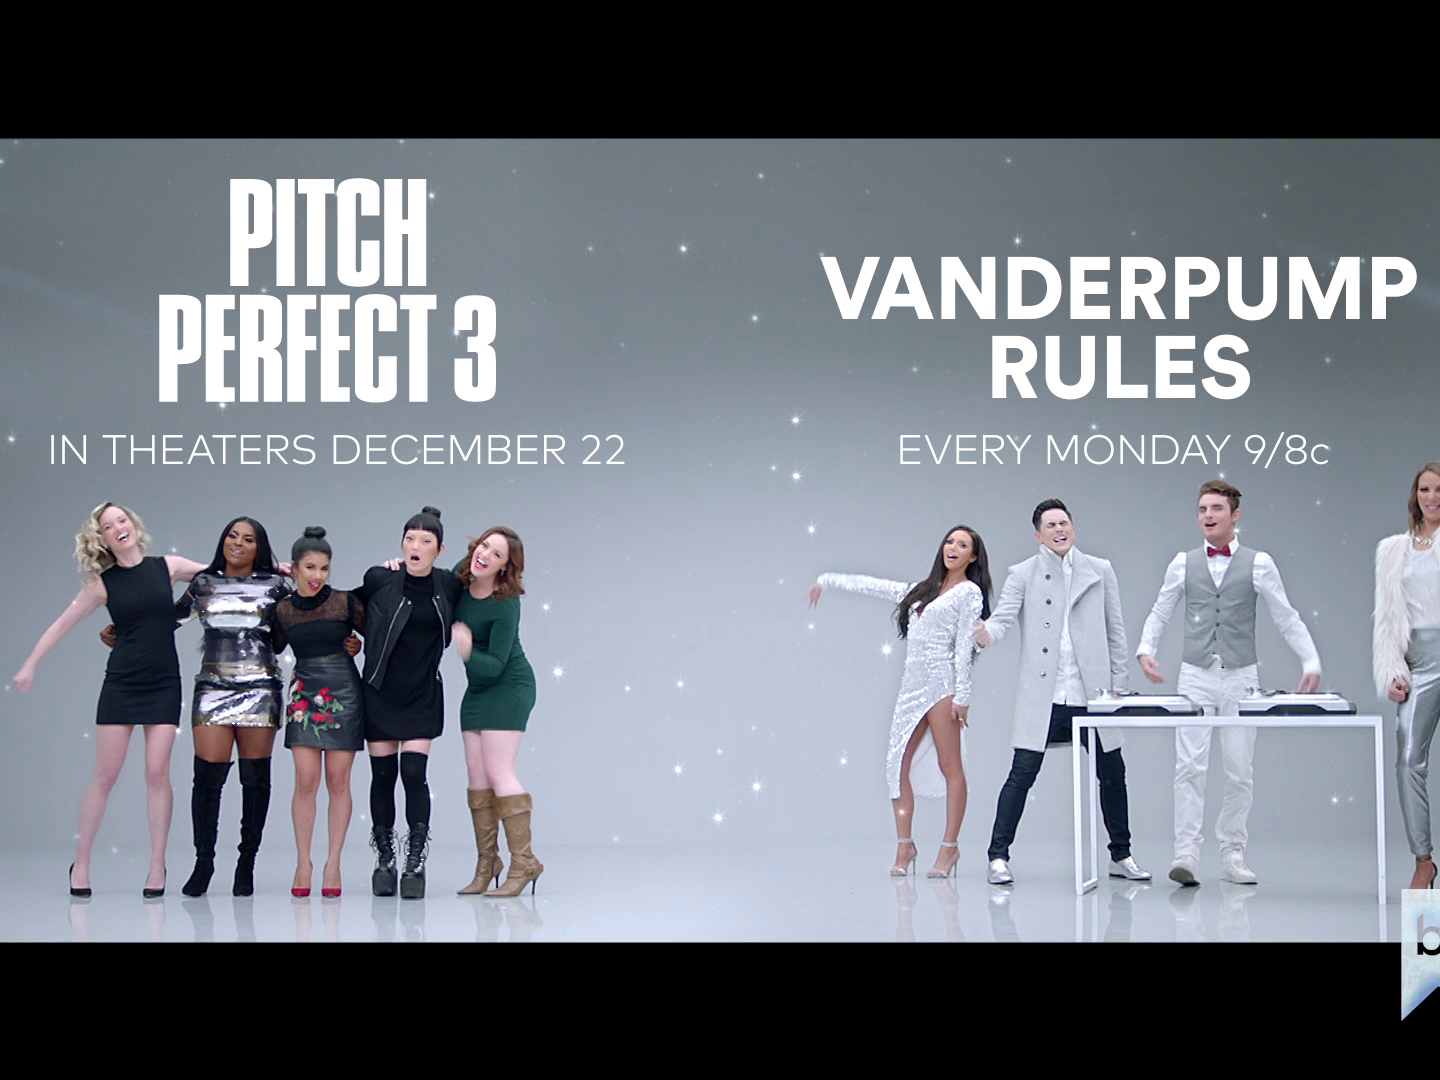 Vanderpump Rules/Pitch Perfect 3 Thumbnail